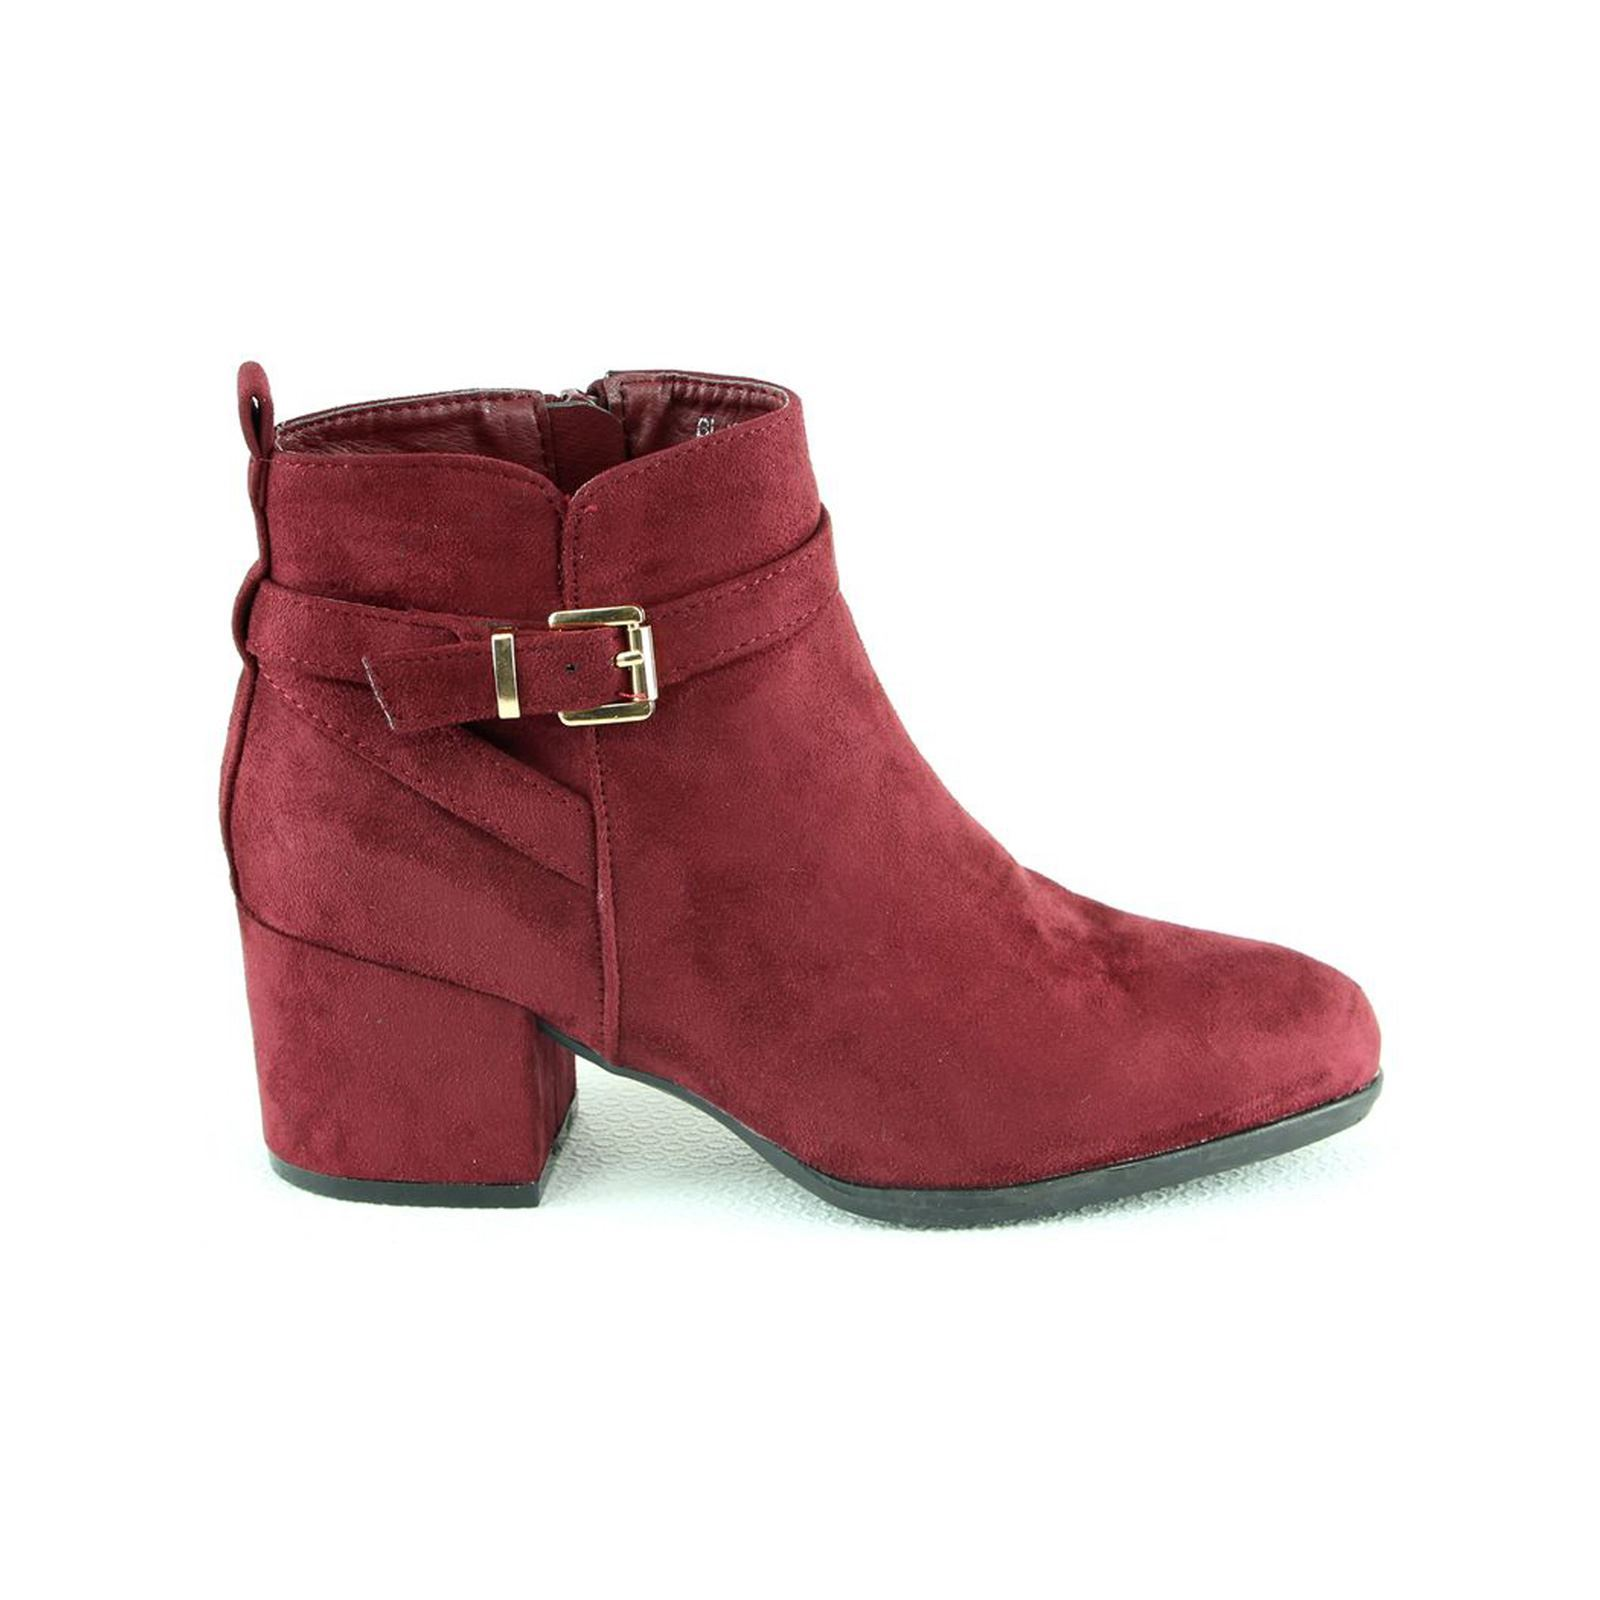 Bottine La Boots Brandalley Souriante Rouge HdwqZdr 403a87cde4fb